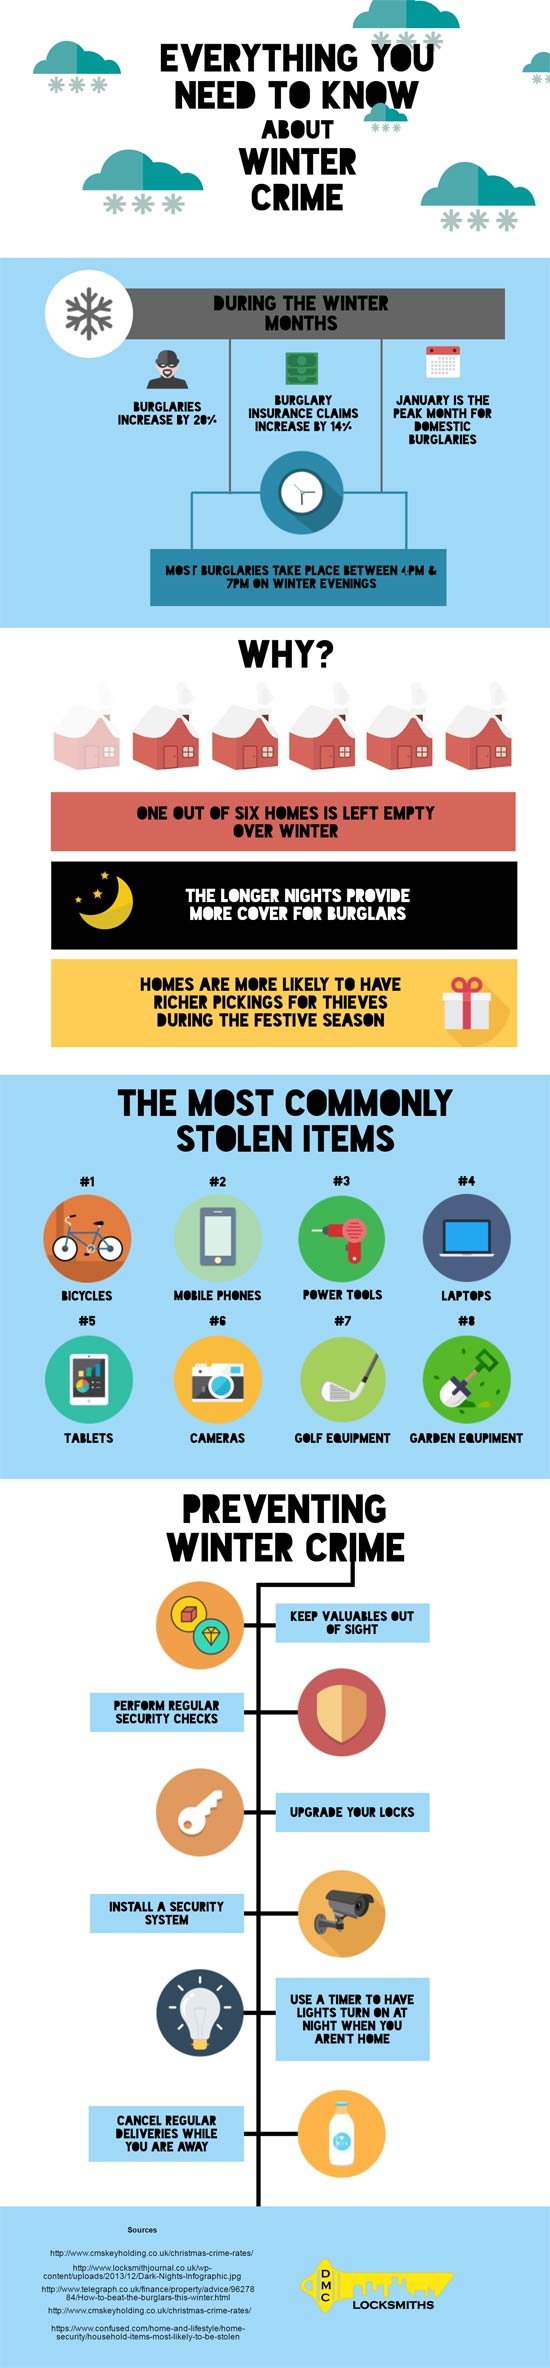 Securing your home during the winter infographic